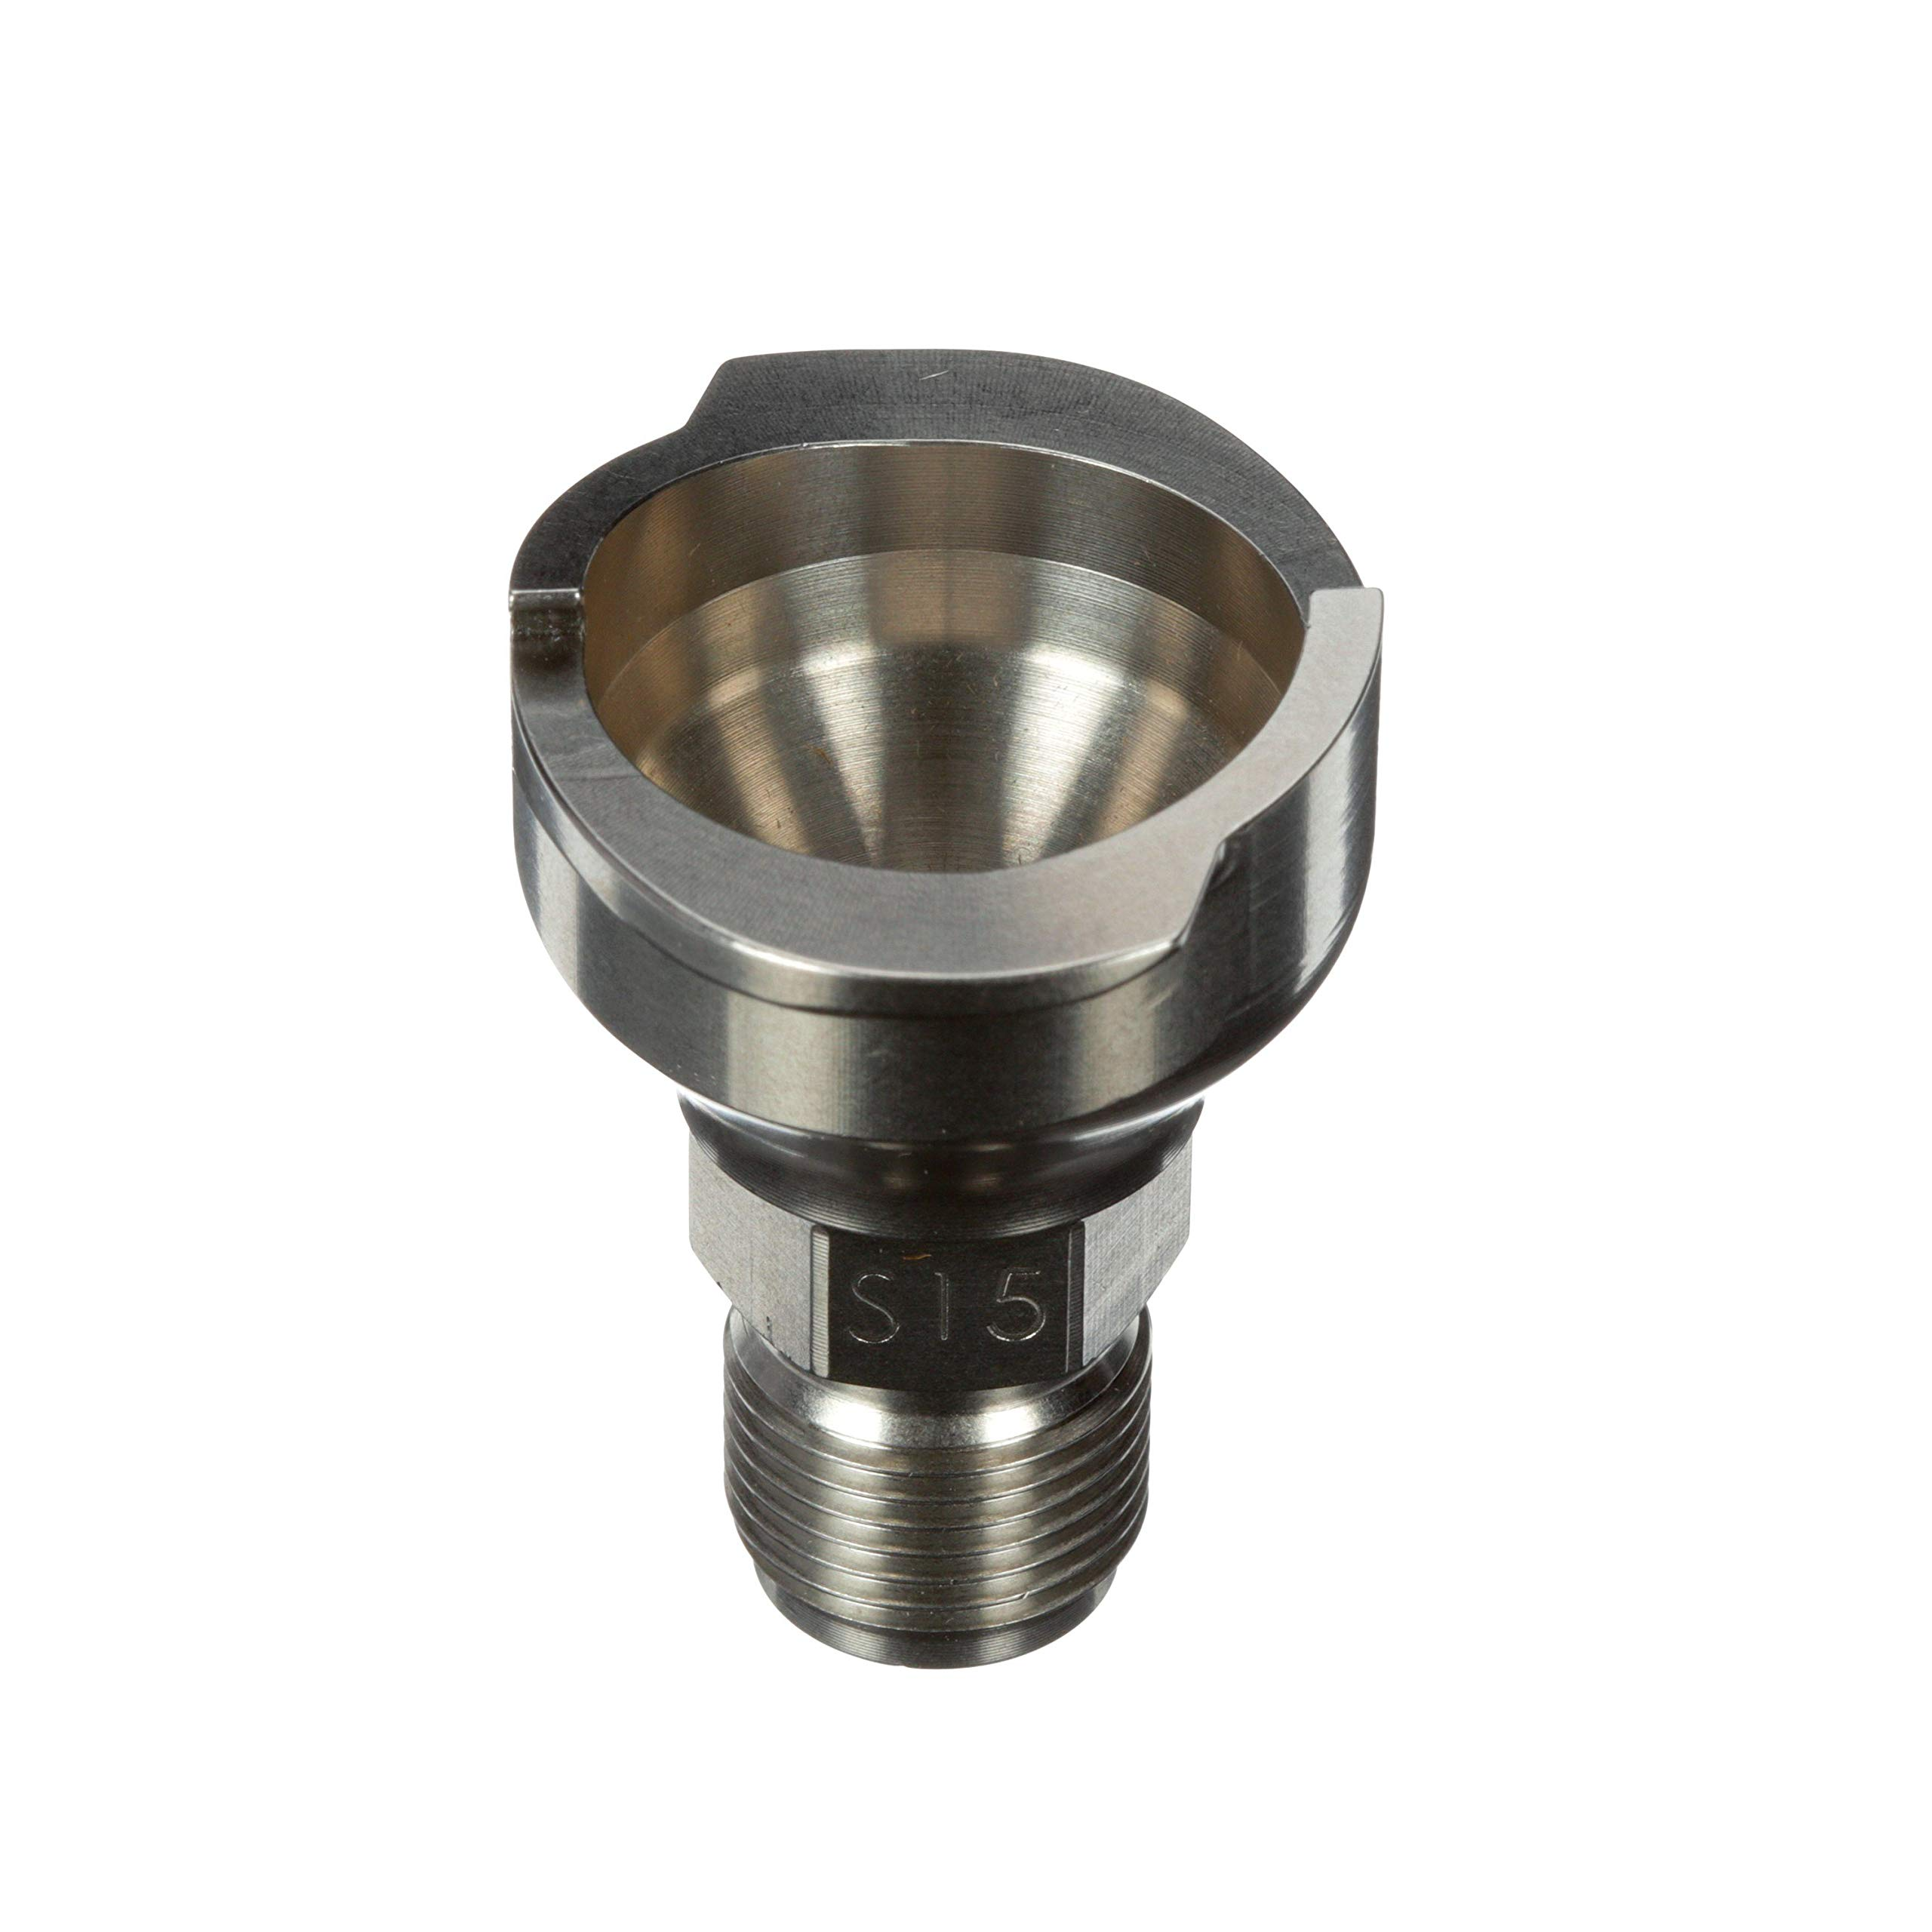 PPS 26046 3M 3/8 in Male, 19 Thread BSP Series 2.0 Adapter